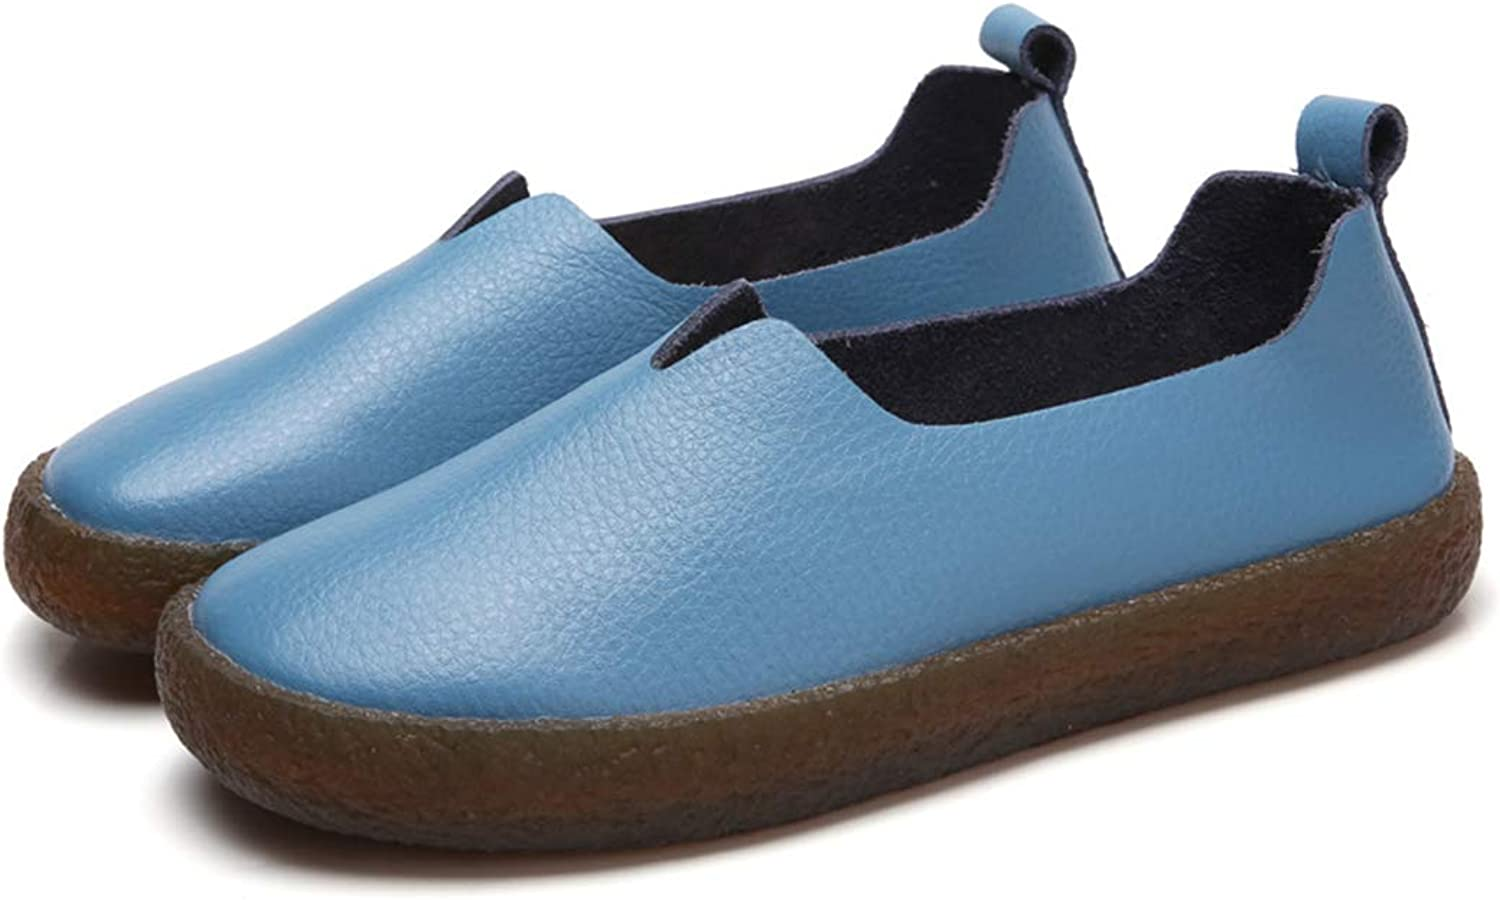 TinaFan Ladies shoes Casual Comfortable Flats Female shoes Genuine Leather shoes